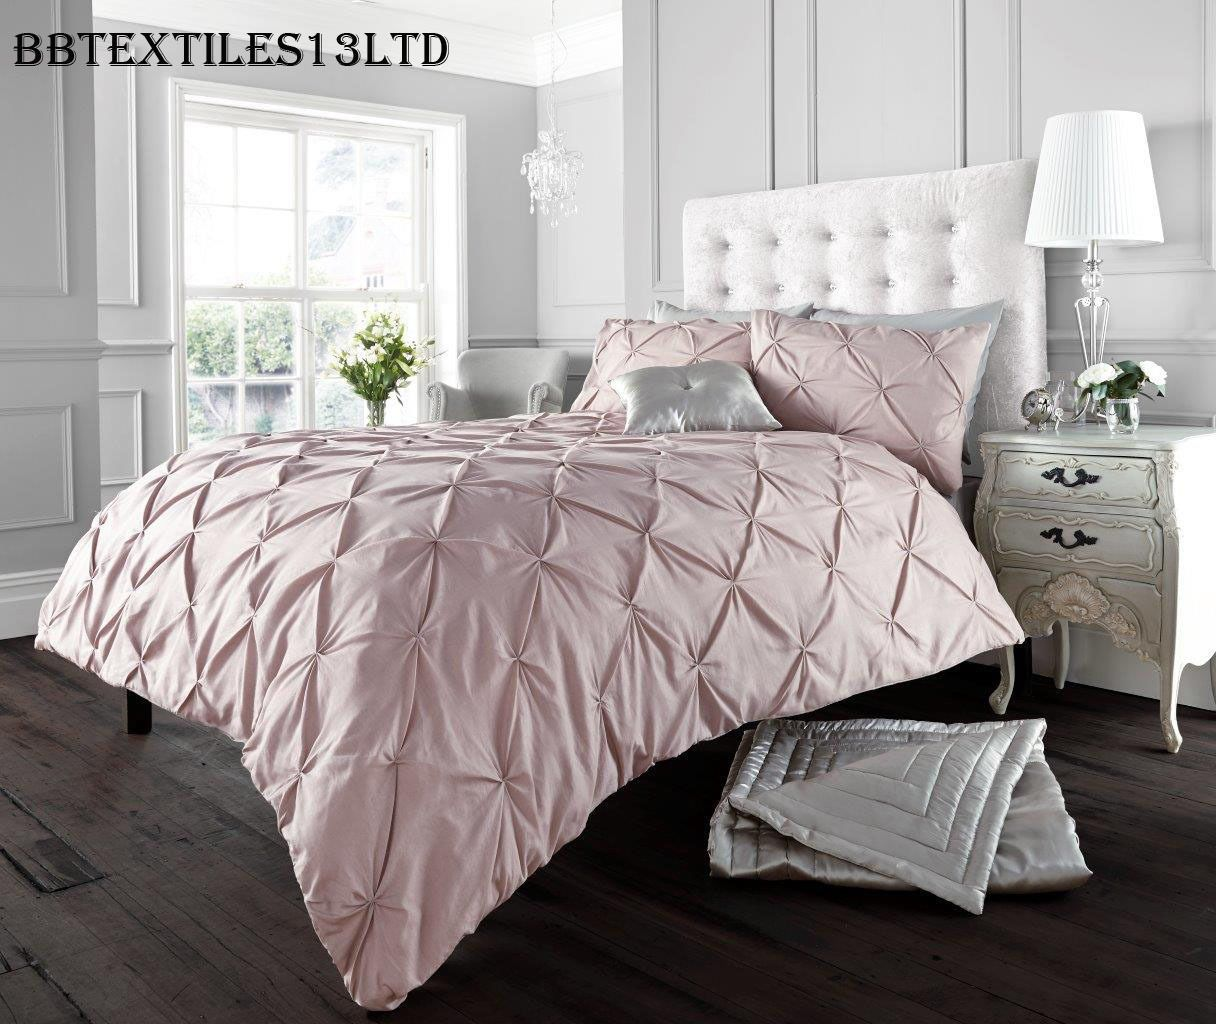 Diamond Pintuck Duvet Cover Set With Pillow Cases Luxury Bed